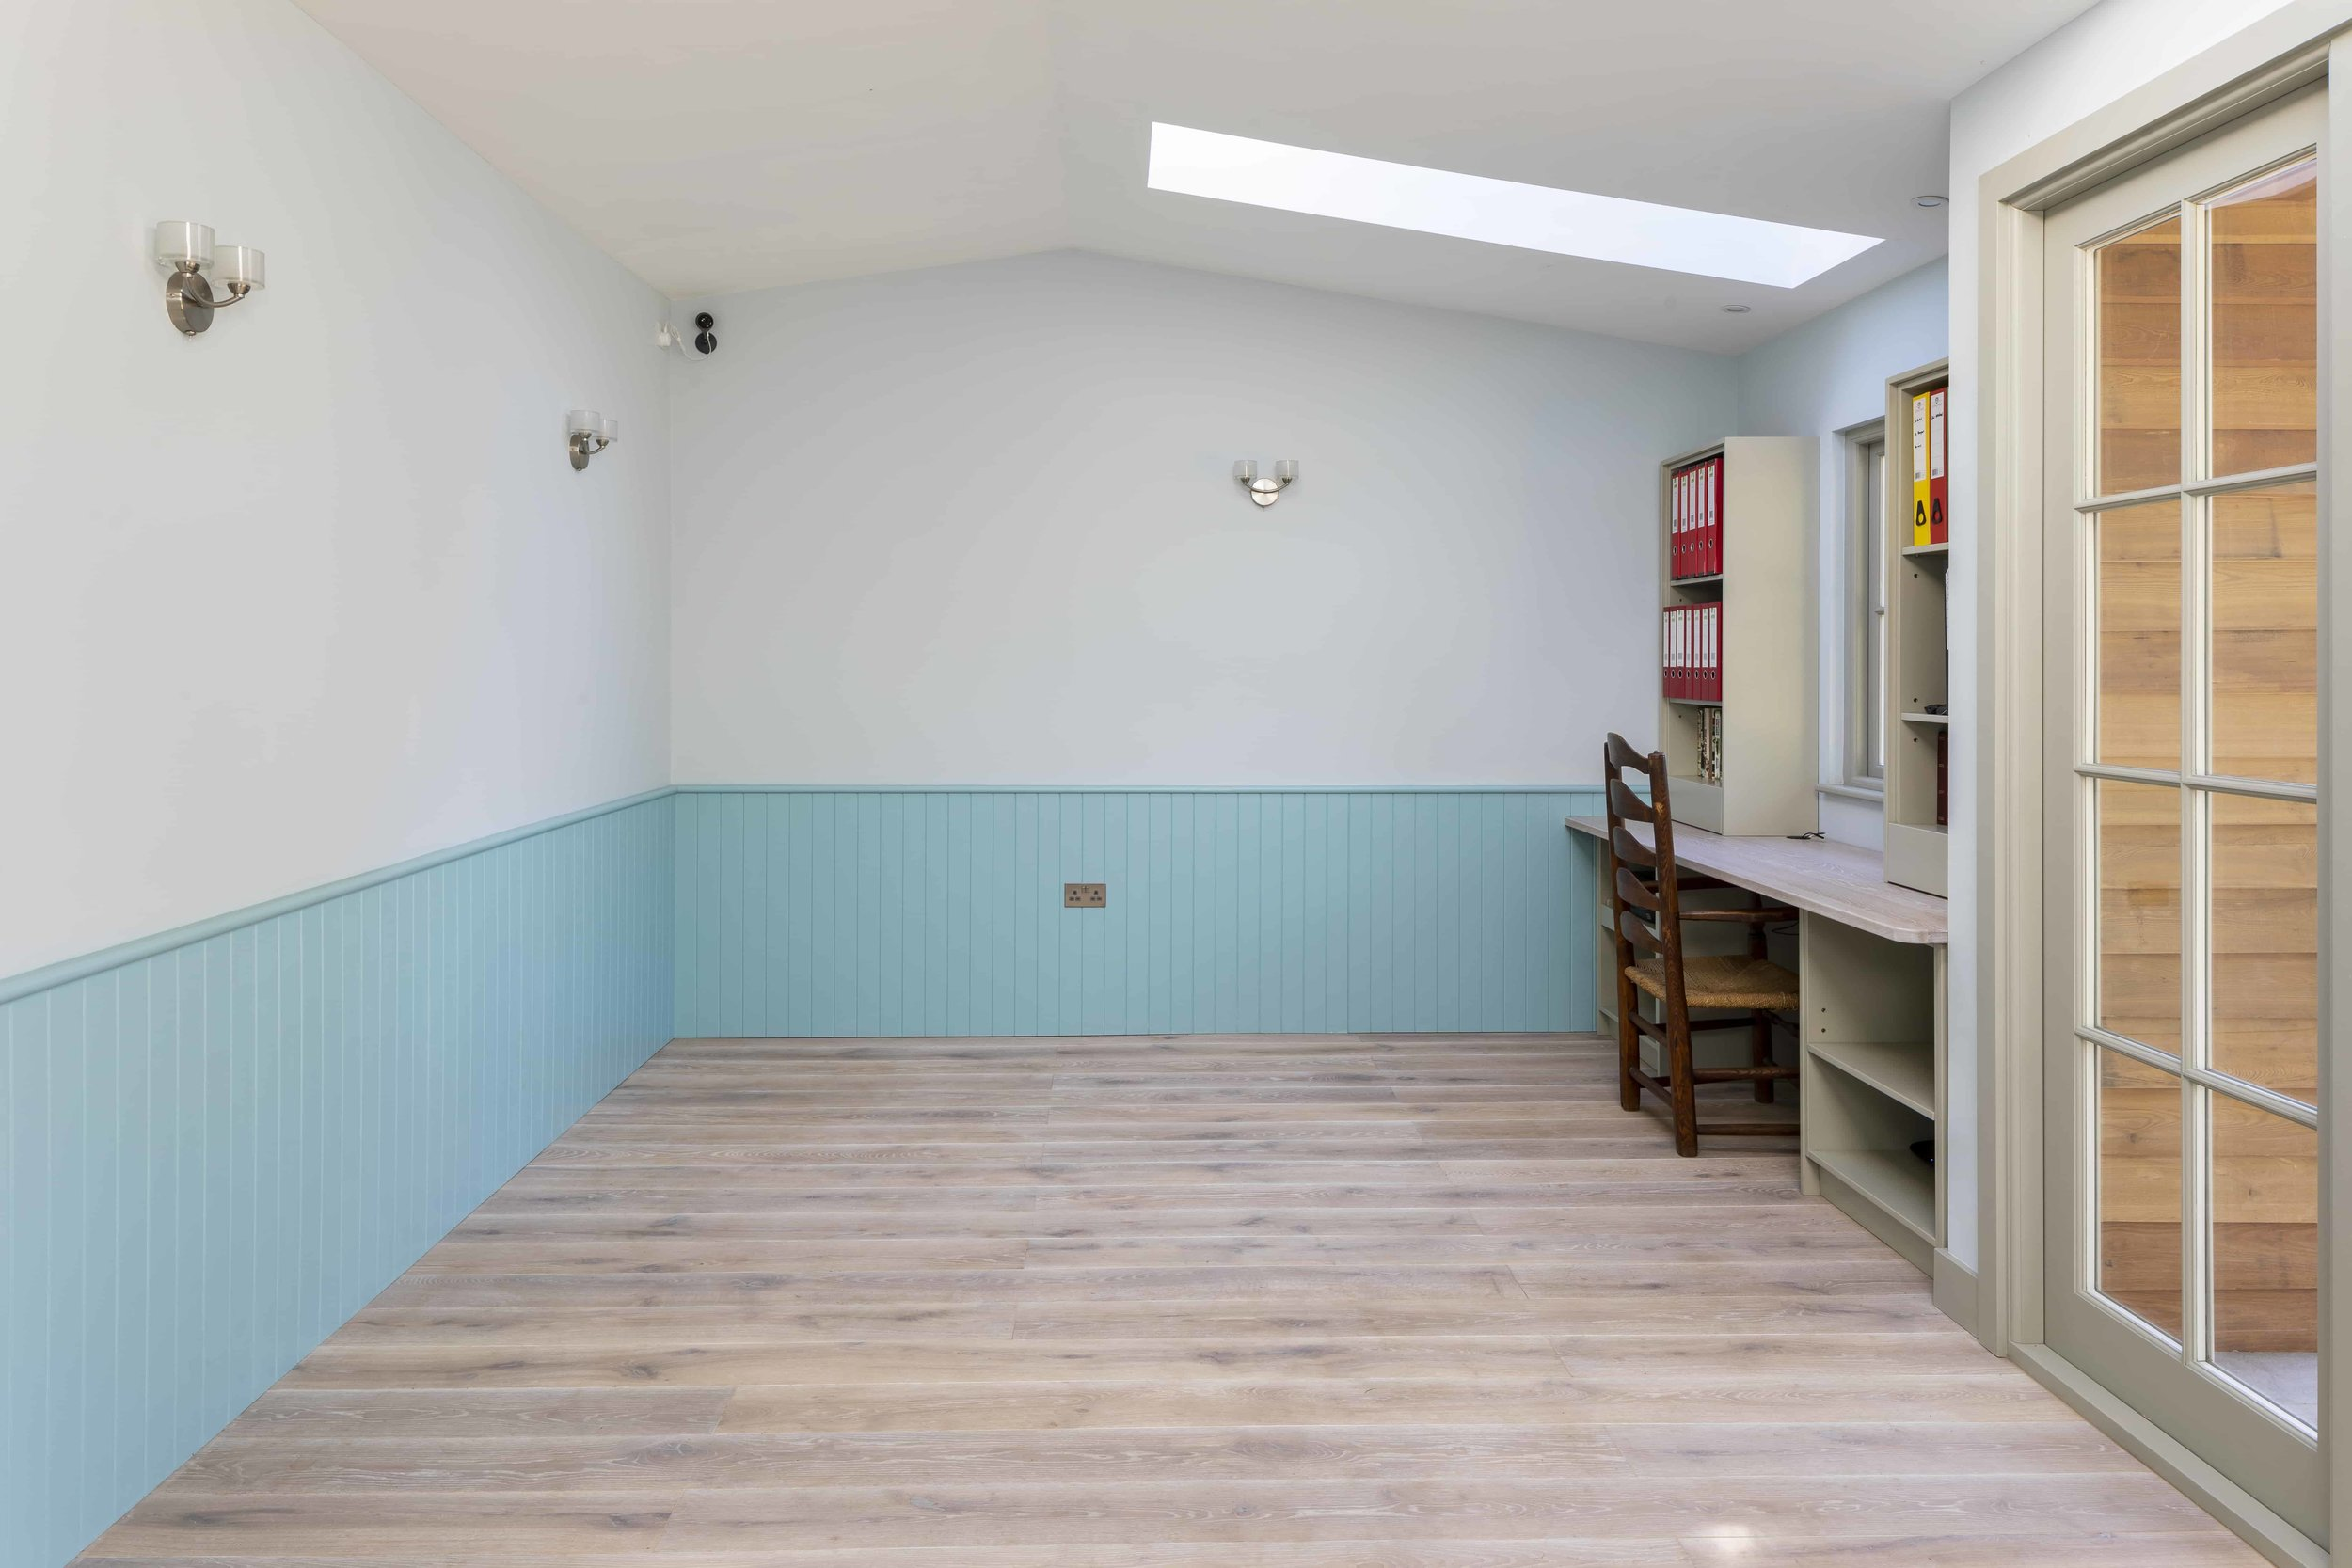 eastbourne road summer house-7-min.jpg